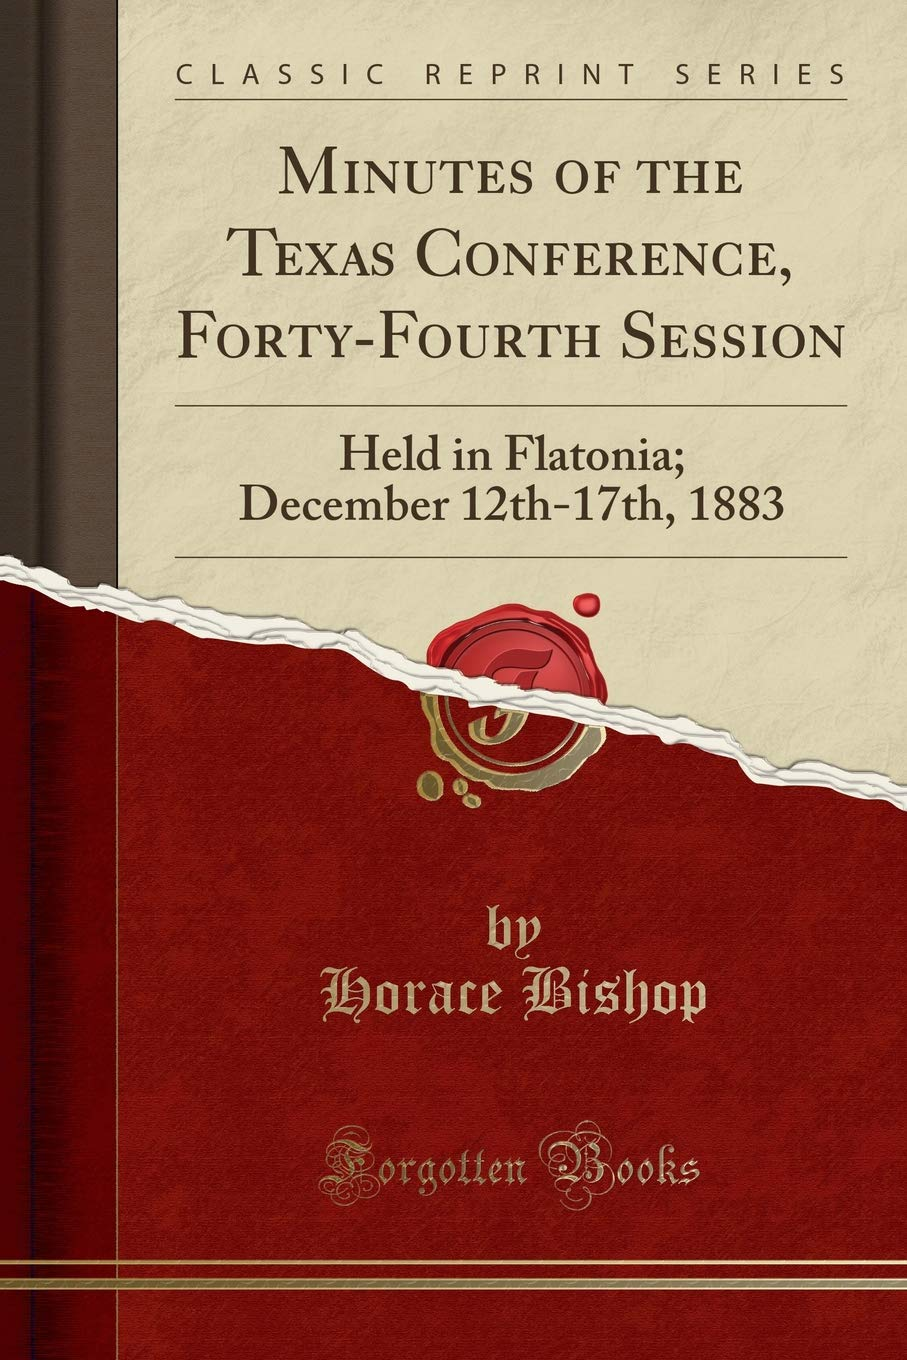 Download Minutes of the Texas Conference, Forty-Fourth Session: Held in Flatonia; December 12th-17th, 1883 (Classic Reprint) pdf